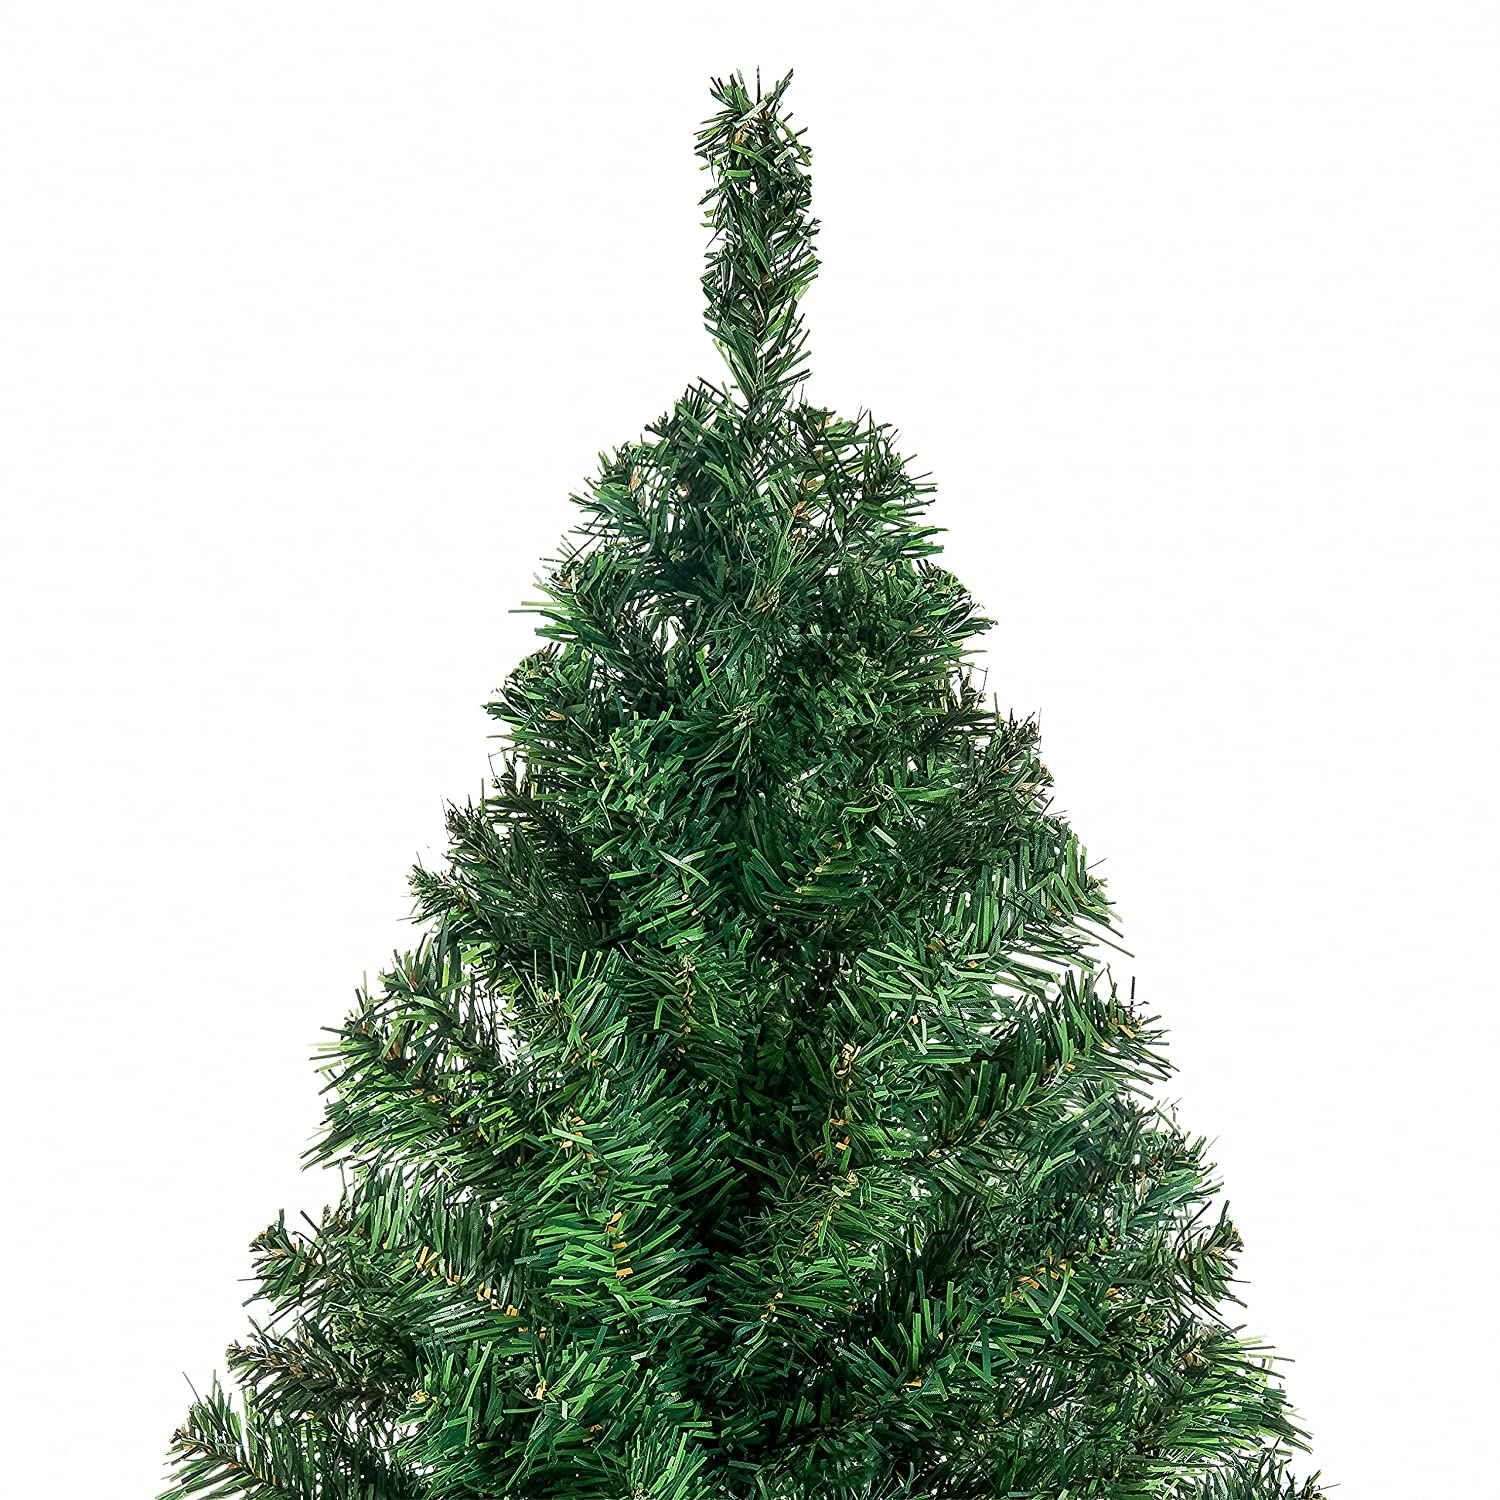 Amazoncom Best Choice Products 6 Premium Hinged Artificial Christmas Pine